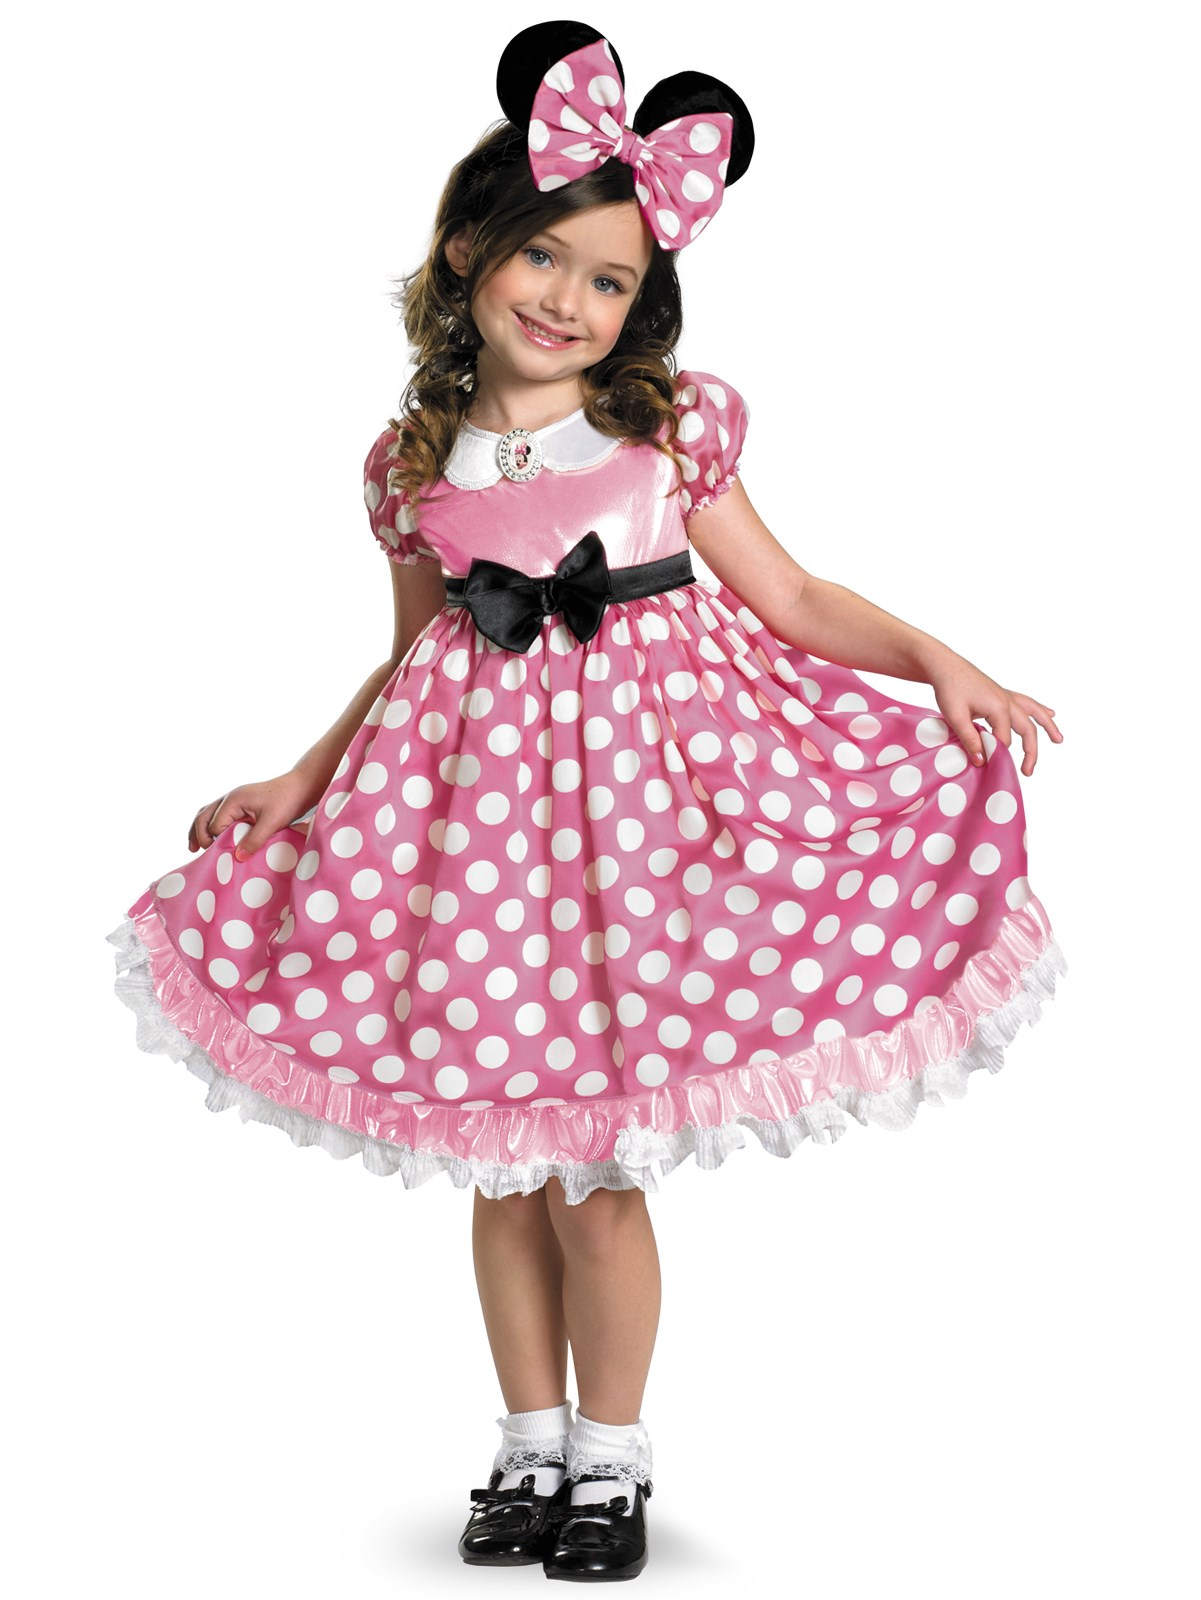 Disney Mickey Mouse Clubhouse Minnie Mouse Glow in the Dark Kids Costume 4/6x